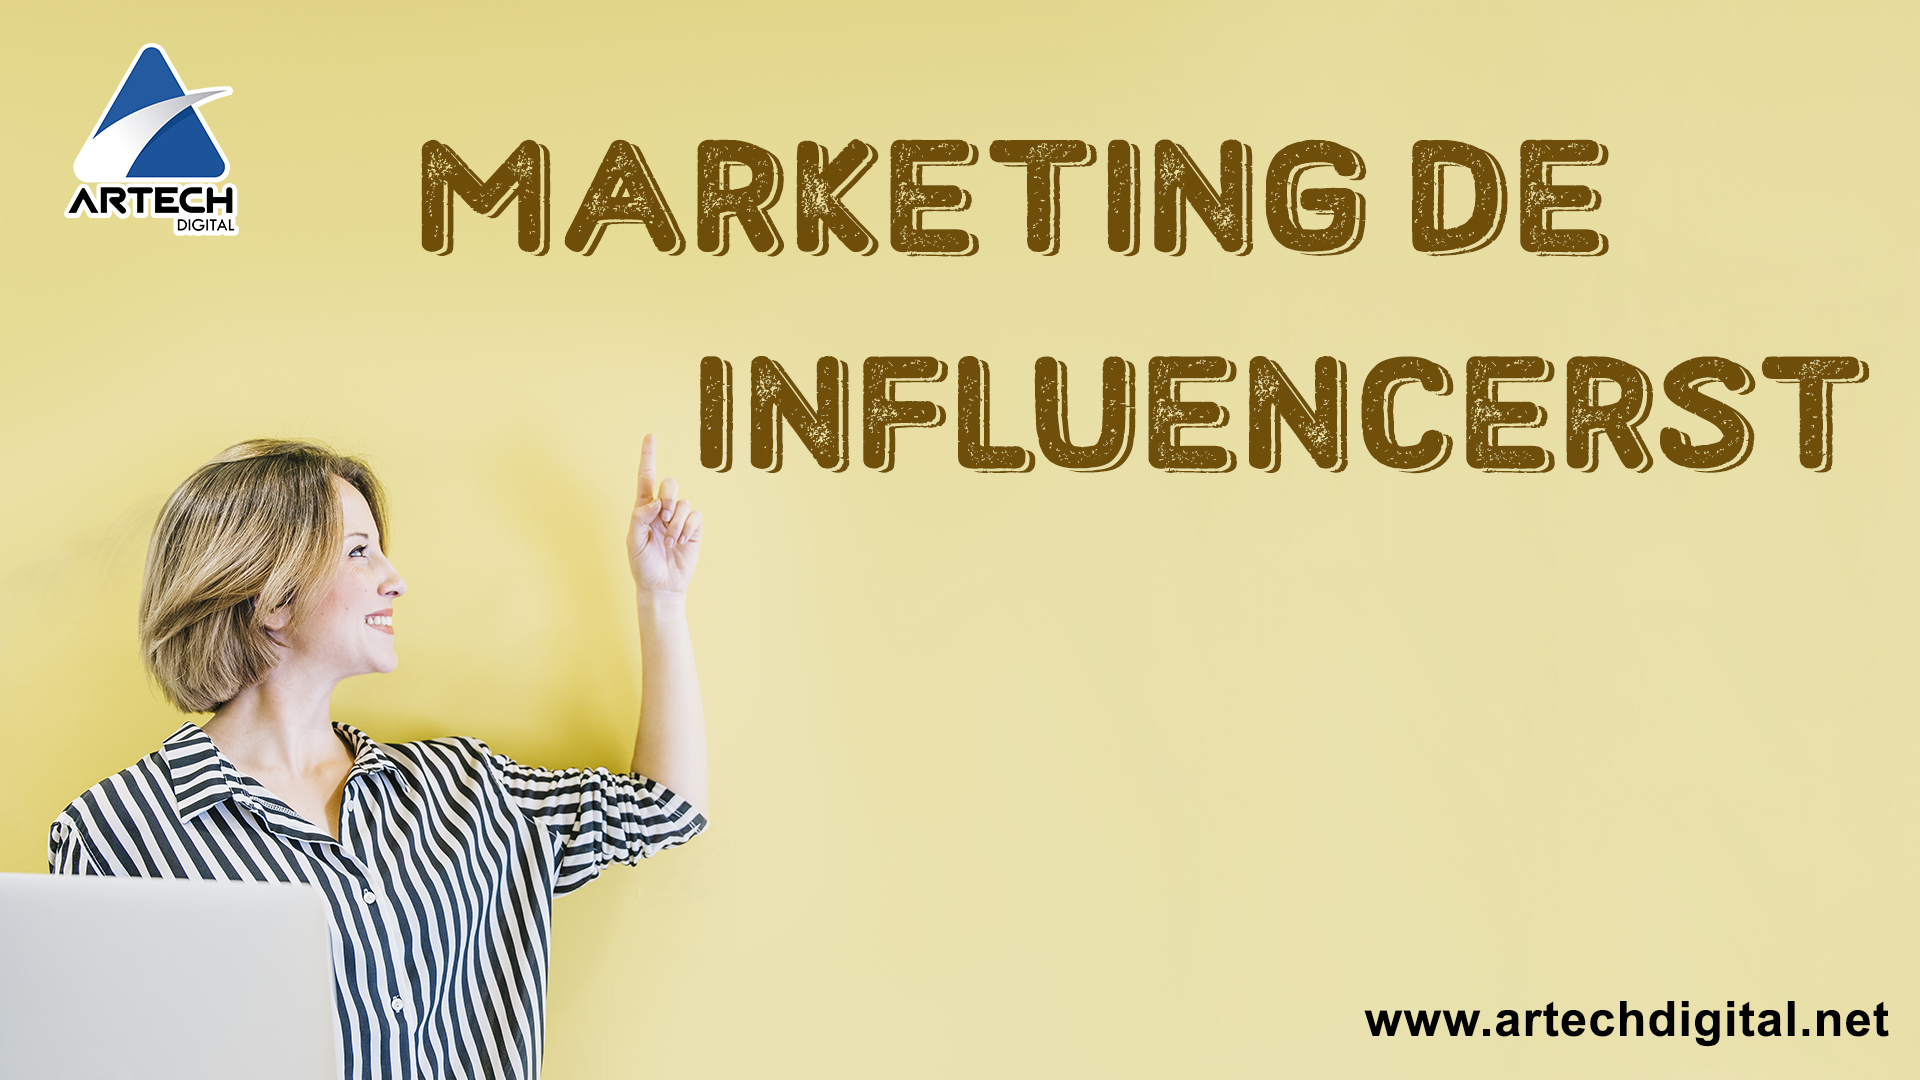 Marketing de Influencers, ¡Establece relaciones duraderas para tu empresa!